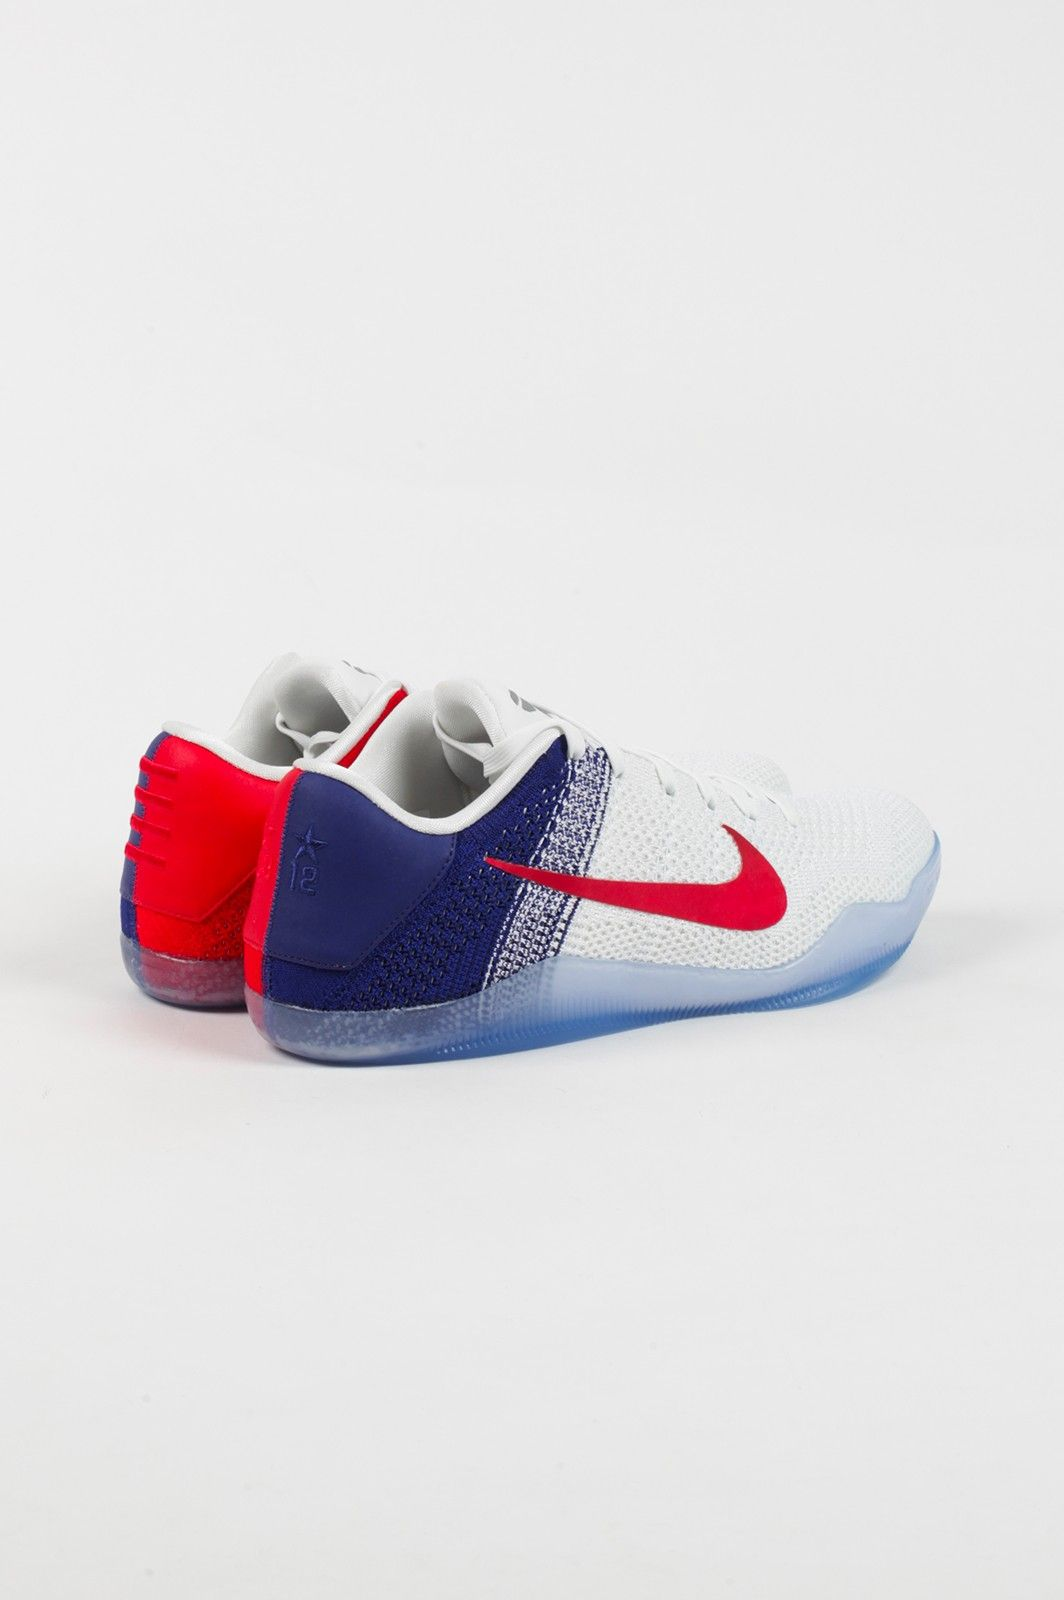 ad2e5a8925ec AVAILABLE NOW SIZE 8-13 Kobe has represented the Dream Team well alongside  guys like Vince Carter